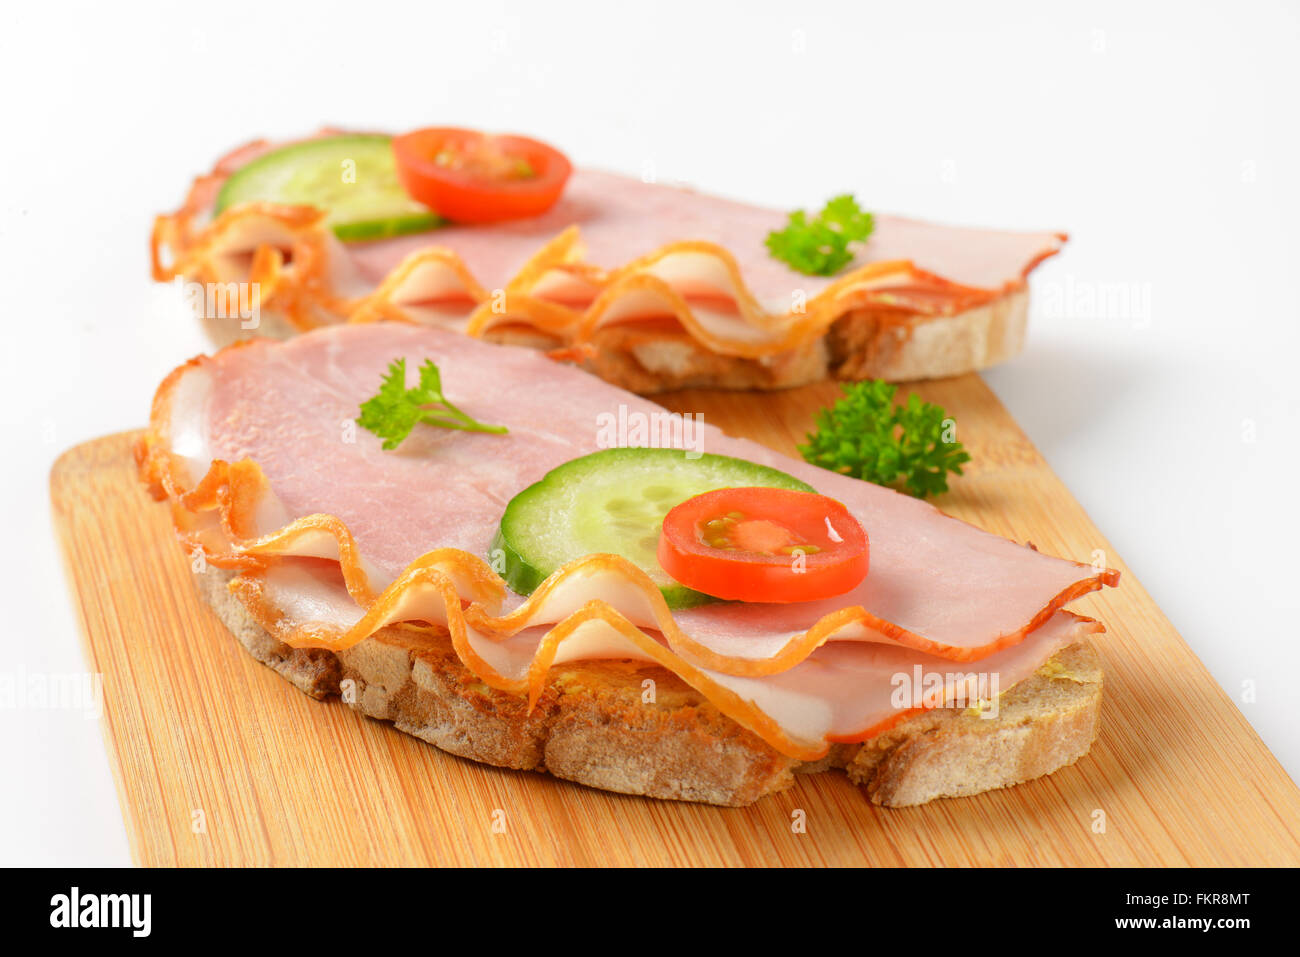 close up of two open faced ham sandwiches on wooden cutting board Stock Photo